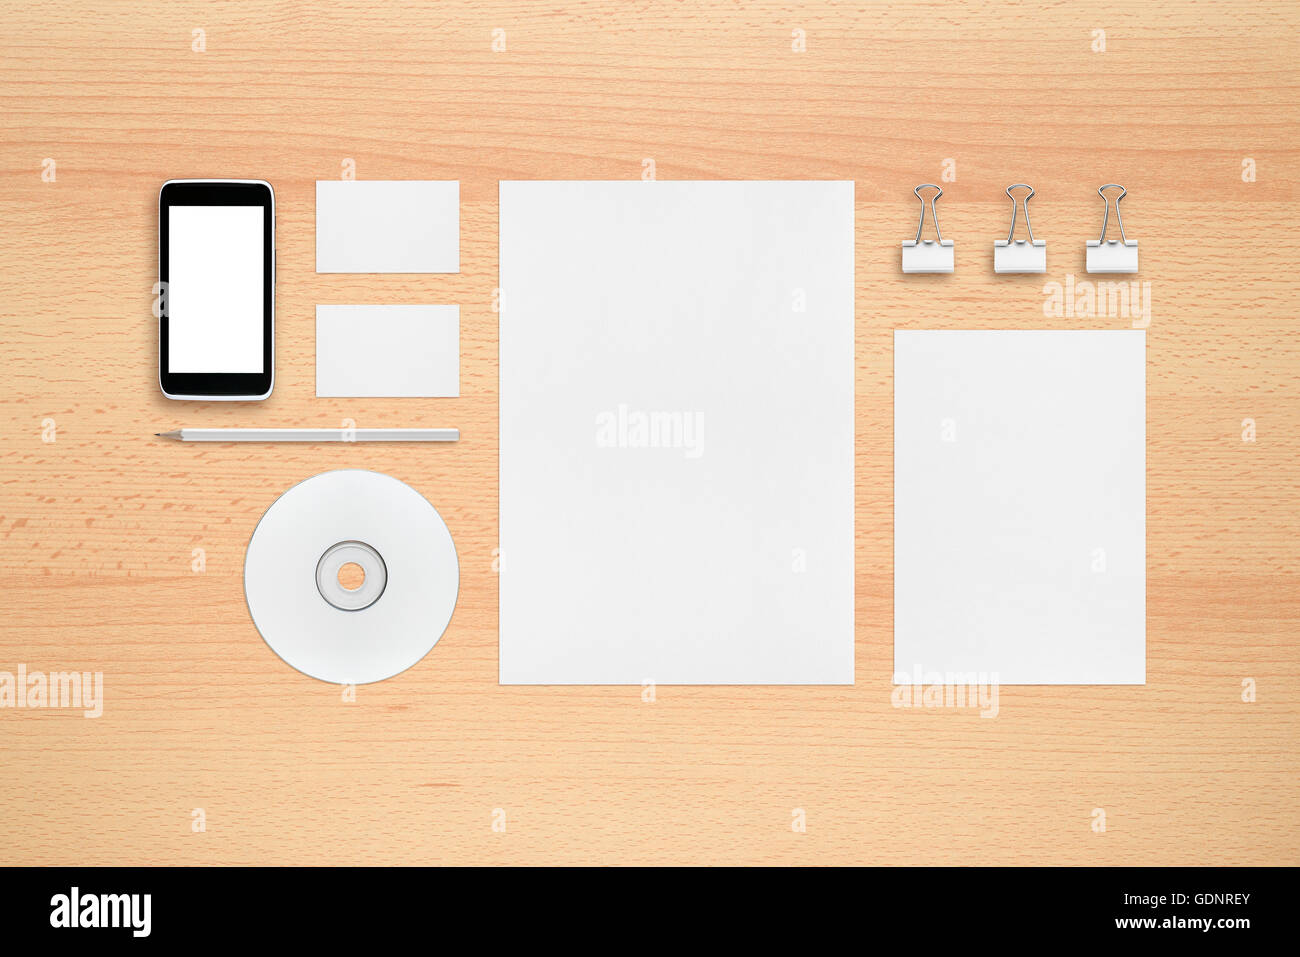 Template for branding identity - smartphone, business cards, pencil ...